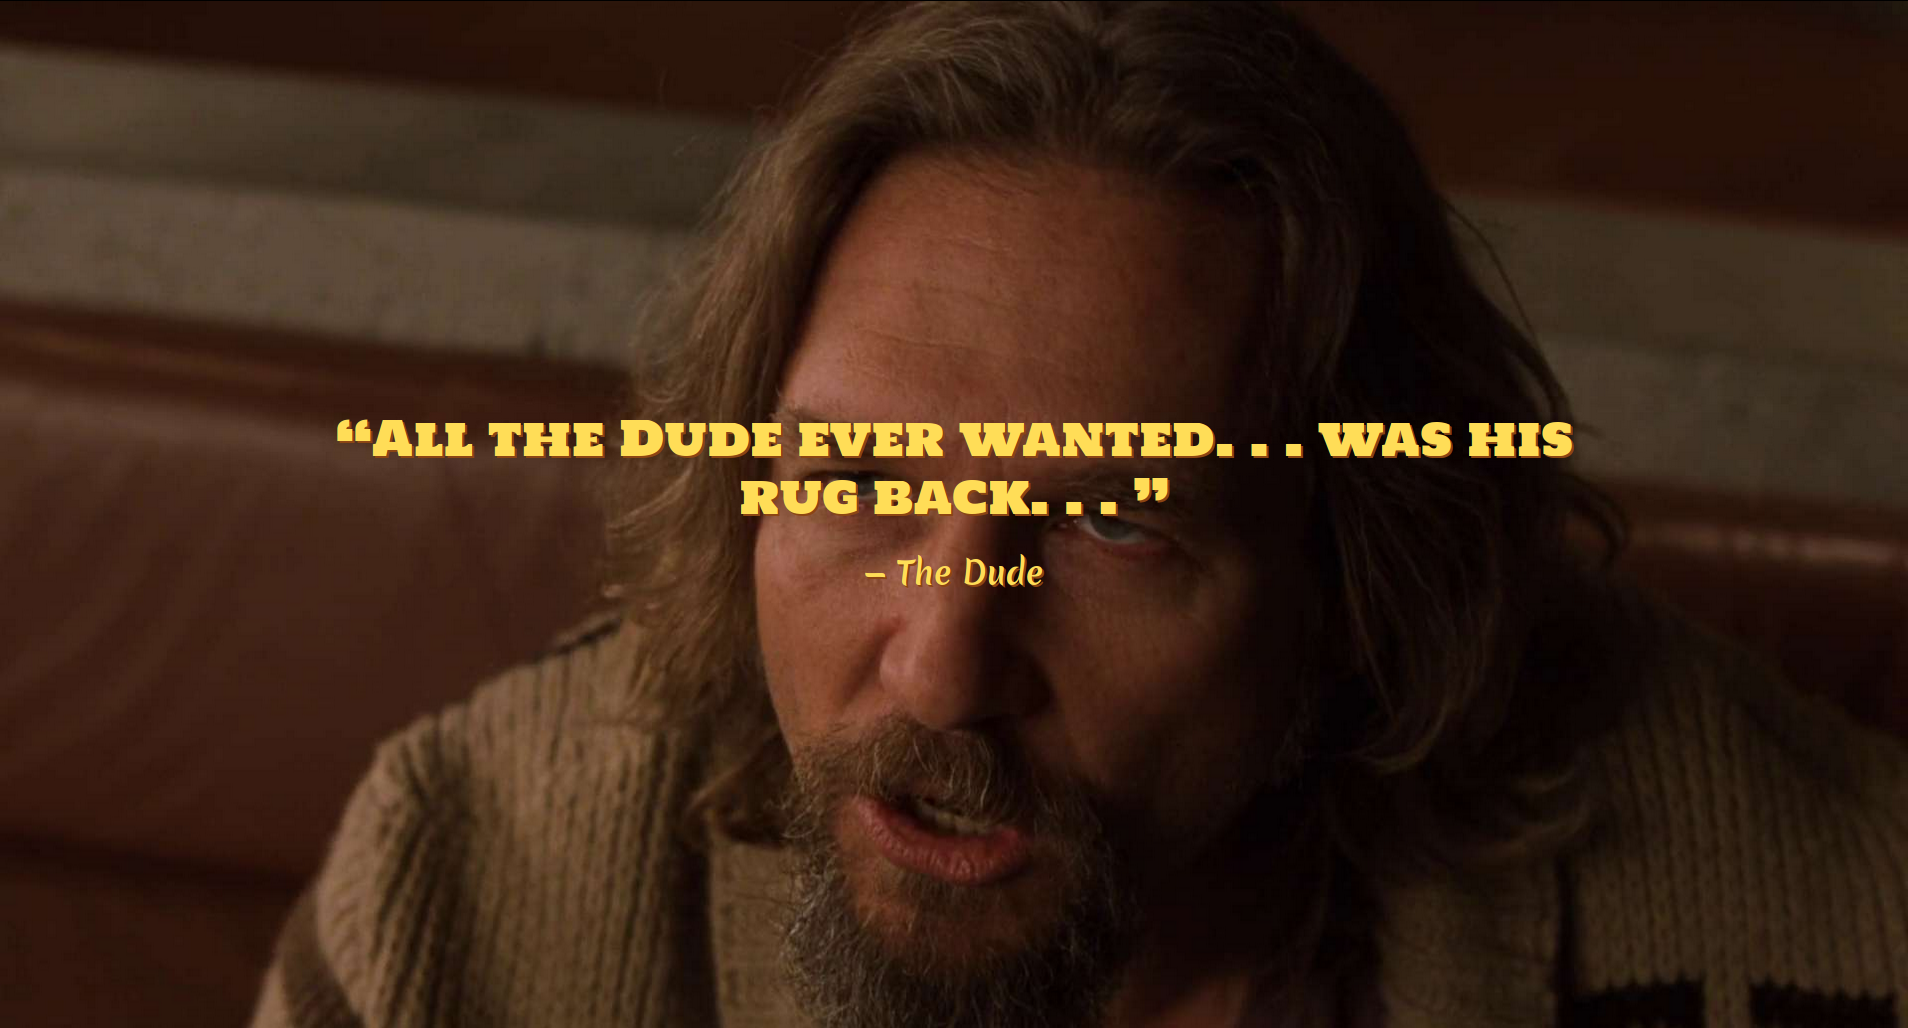 All the dude ever wanted… was his rug back…